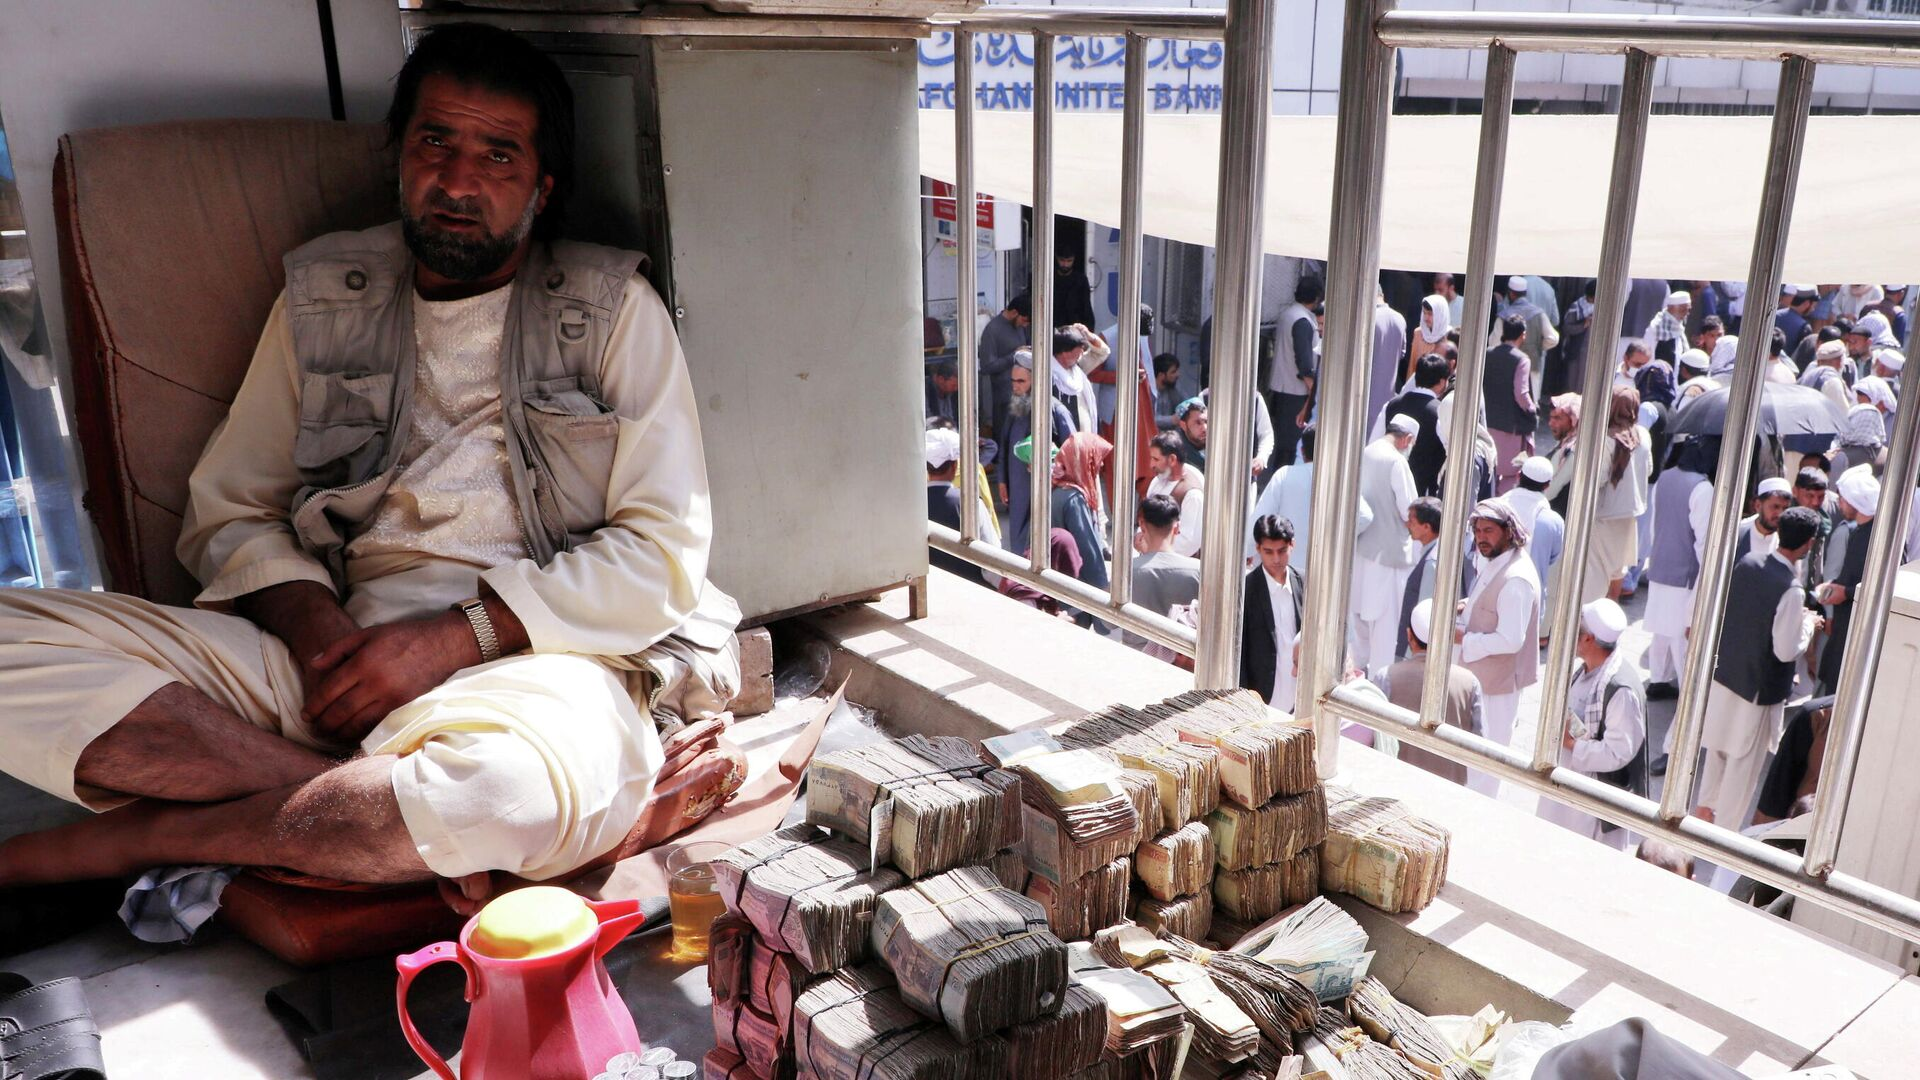 An Afghan money exchange dealer waits for customers at a money exchange market, following banks and markets reopening after the Taliban took over in Kabul, Afghanistan, September 4, 2021 - Sputnik International, 1920, 27.09.2021